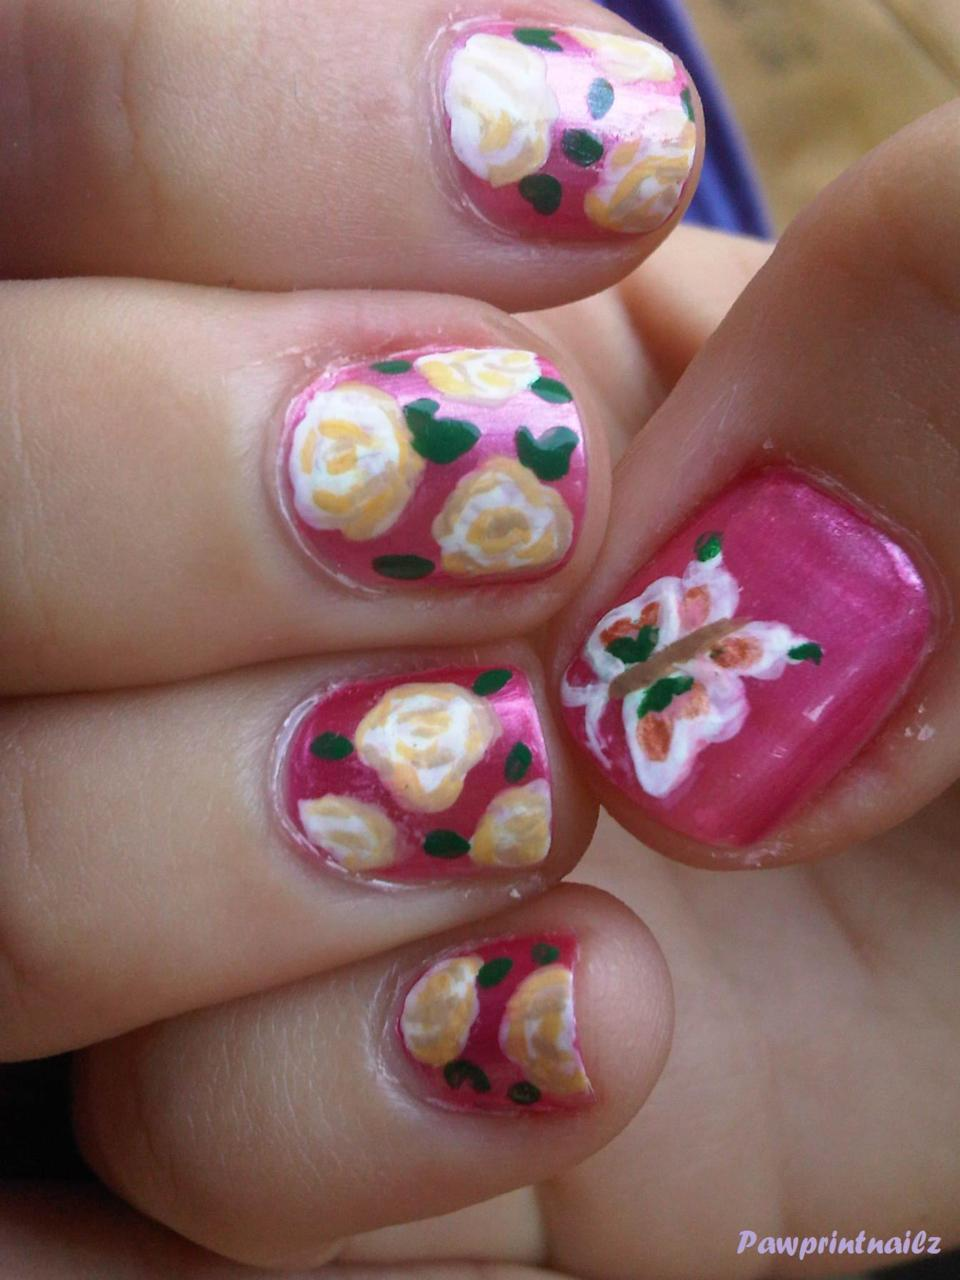 Short squoval; Bubblegum pink base, with white roses, and color coordinating butterfly on thumb. Materials: Ulta's Pink (unknown name, sorry), Craft Smart paint, small paintbrush, and Sally Hansen Diamond Top Coat. These were done for my best friend on her prom, a few months ago. Her dress was a cute soft pink, so she picked a lively bubblegum pink as her back round color. It was her polish, so I don't have the name to post up on here, but I believe she got it at Ulta from the Ulta brand. She wanted white roses to go with the the soft theme of her outfit. Let me tell you right now, white roses are much difficult than they seem, haha. We joked that the roses ended up looking like popcorn, lol! She still liked it though, as a good friend would. :)